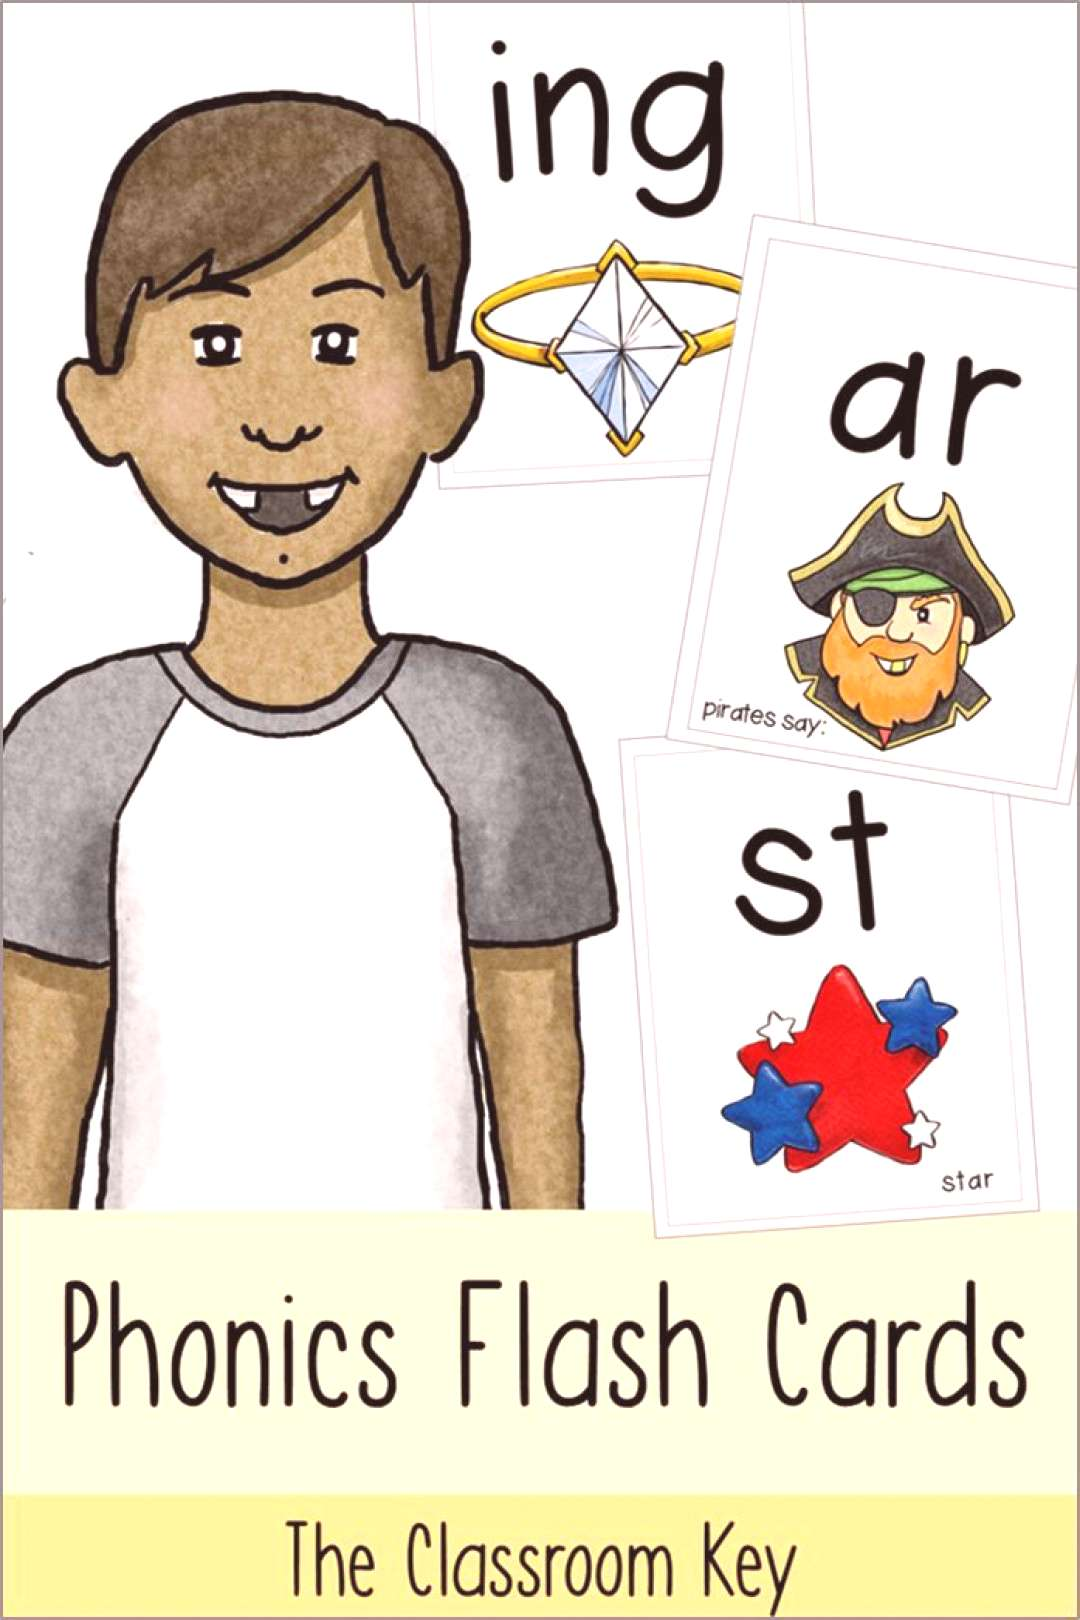 Phonics Flash Cards - The Classroom Key Phonics and sound spelling flash cards - practice letter so